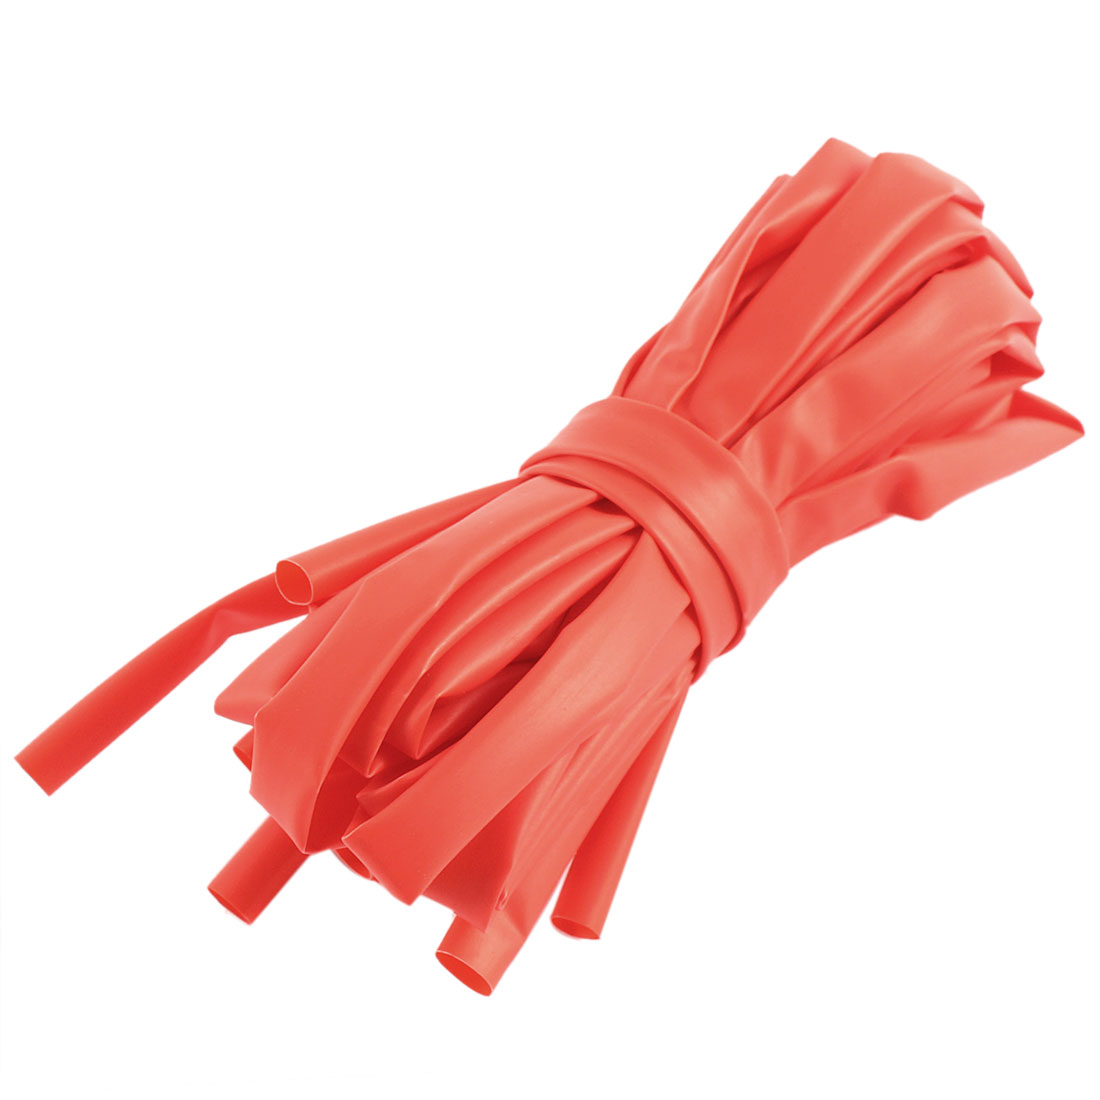 10pcs 2:1 Polyolefin Heat Shrink Tubing Tube Sleeving Wrap Wire Kit Red